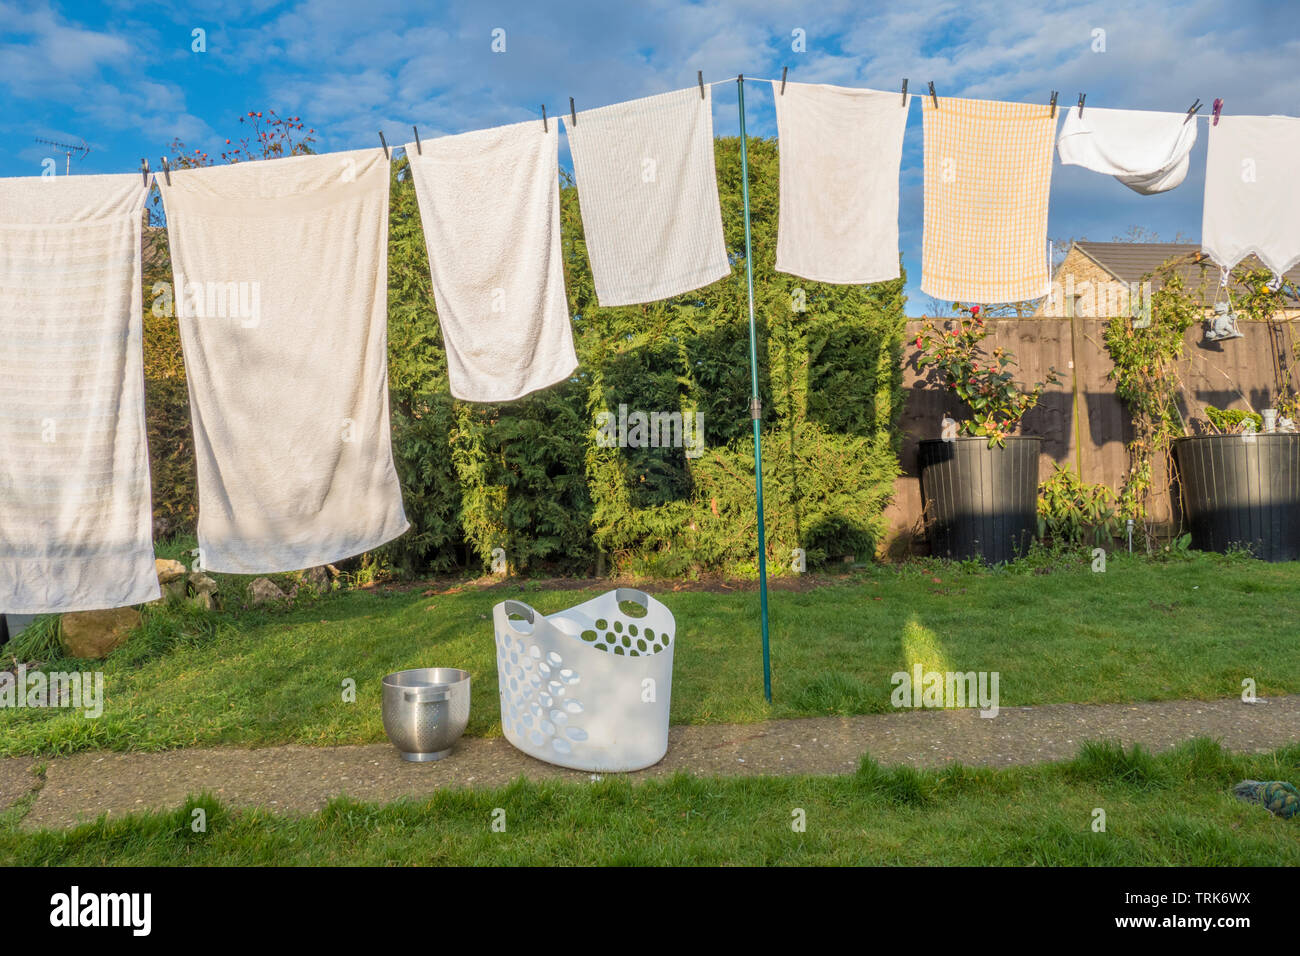 Front view of domestic laundry of wet clothes and towels, pegged and hanging out to dry on a washing line in the warm afternoon sunshine. England, UK. - Stock Image